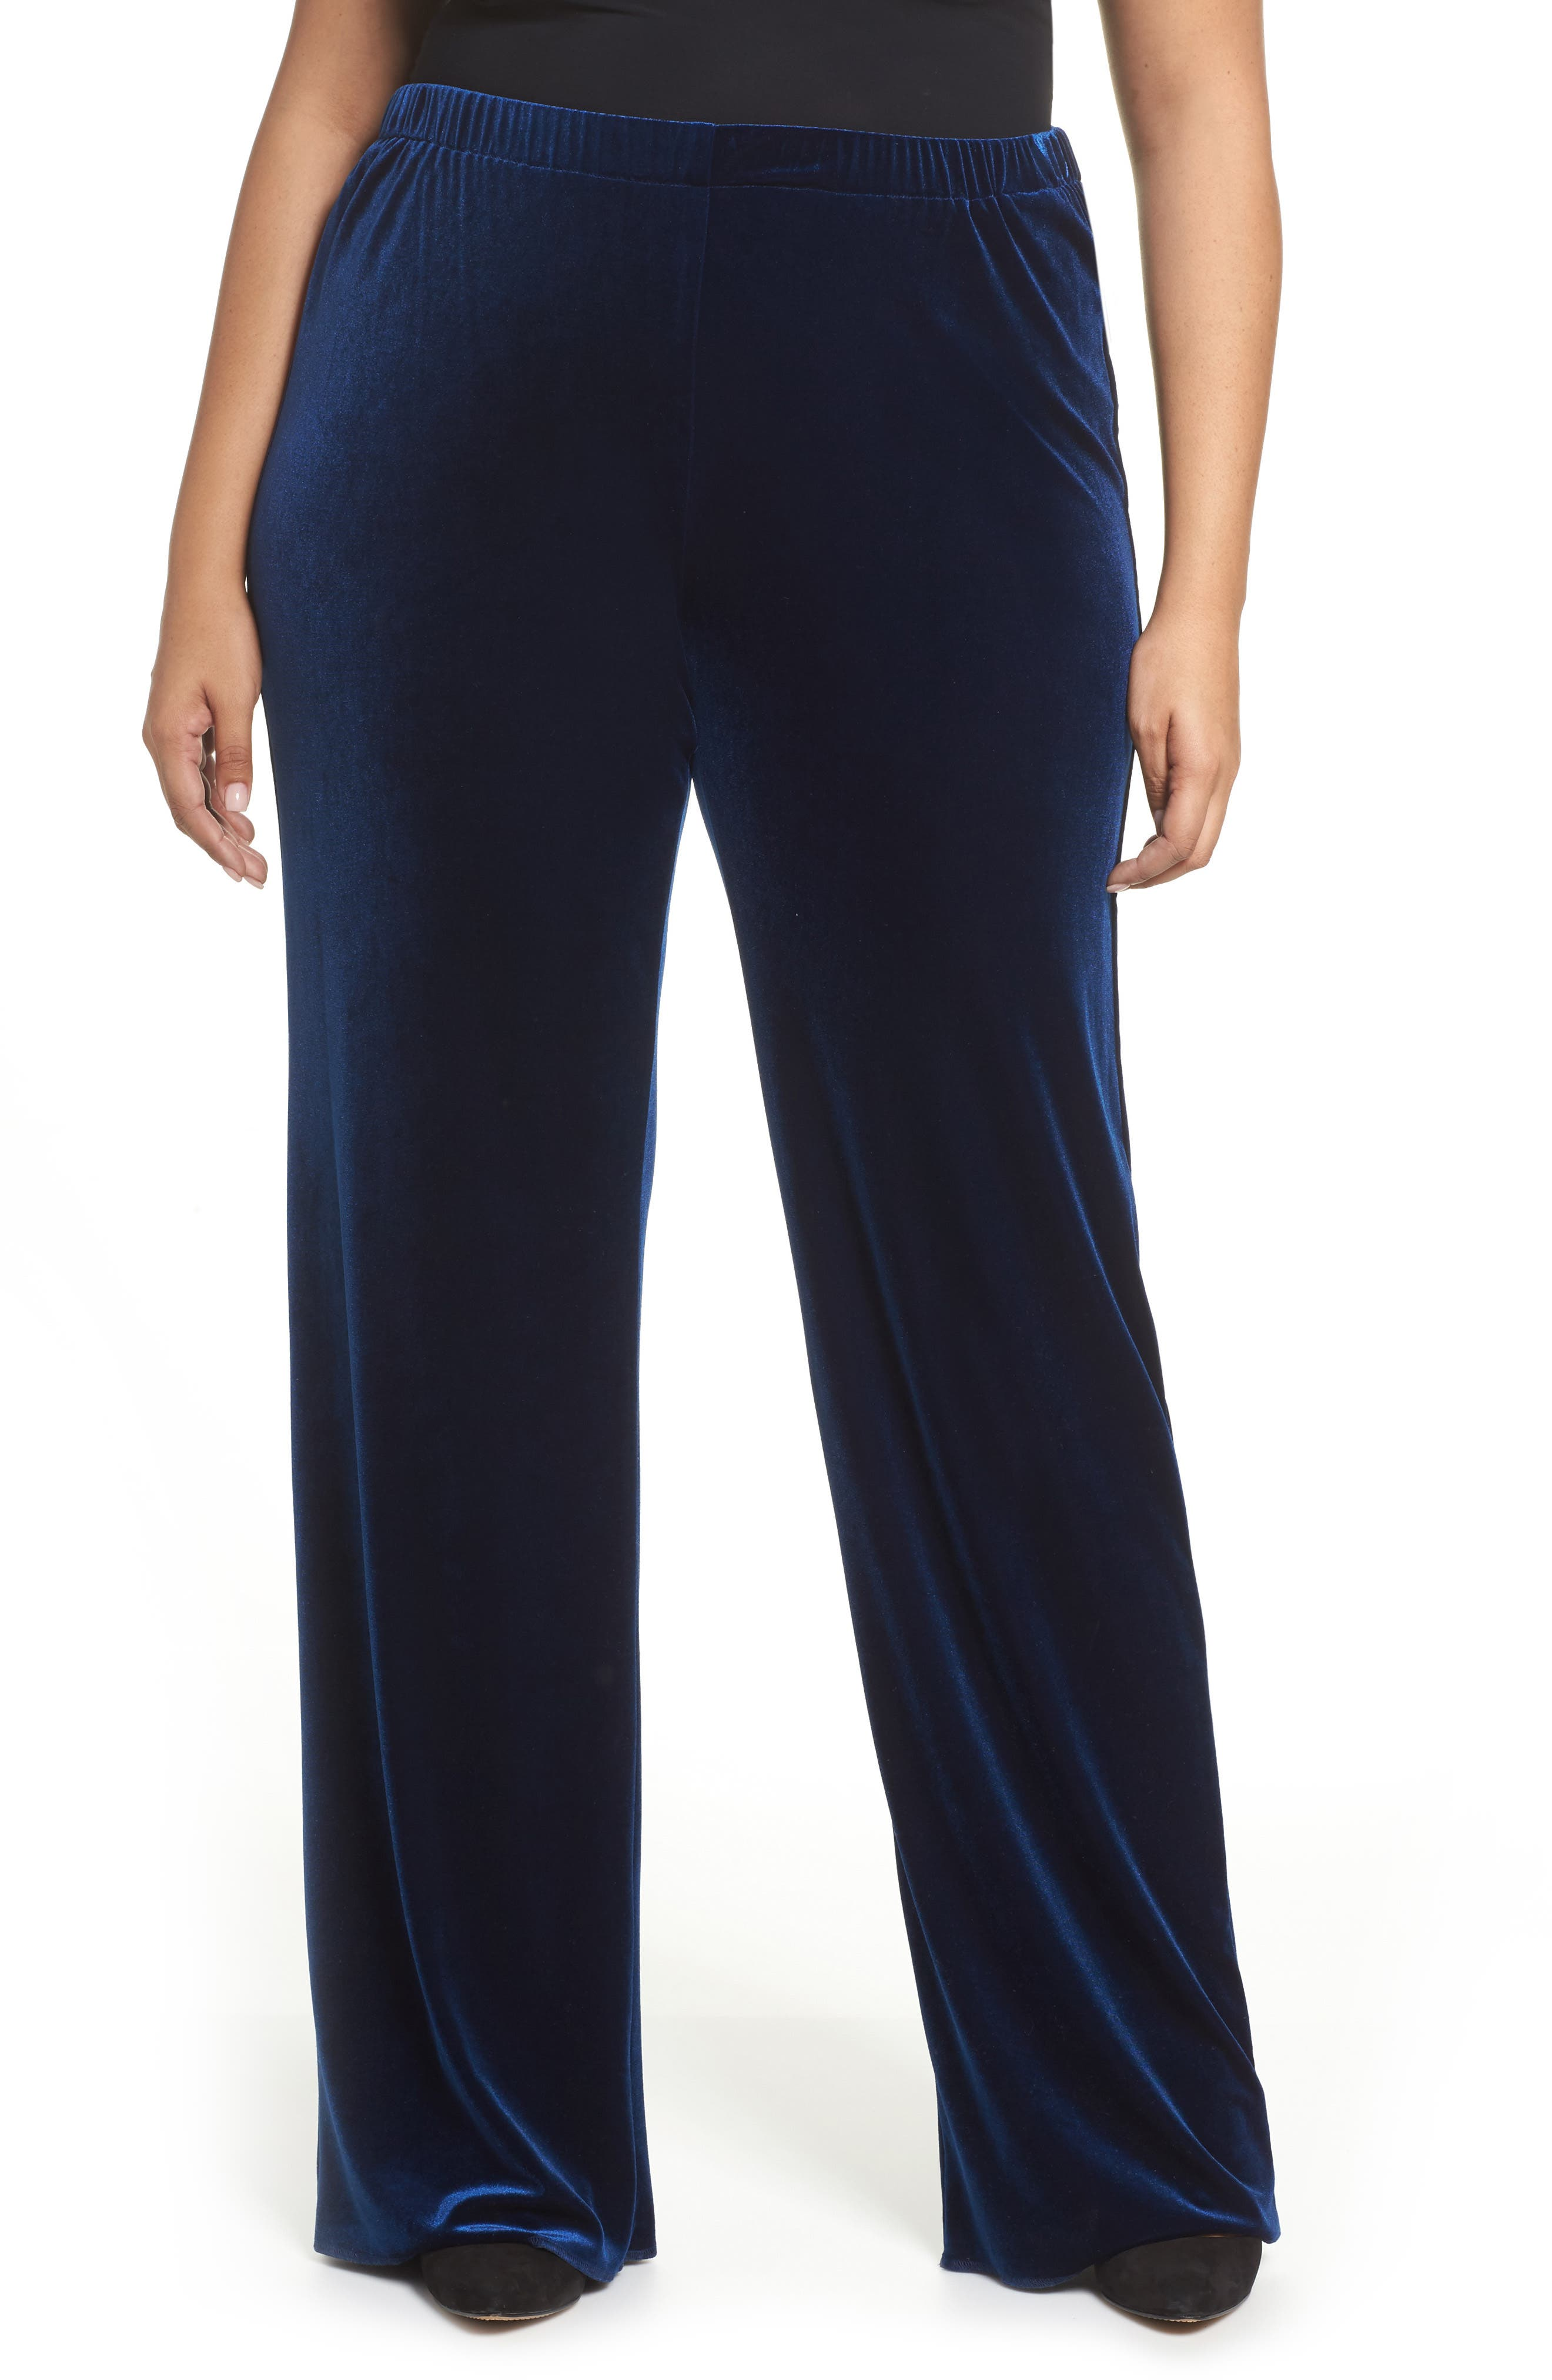 Rosita Velour Pants,                         Main,                         color, 411